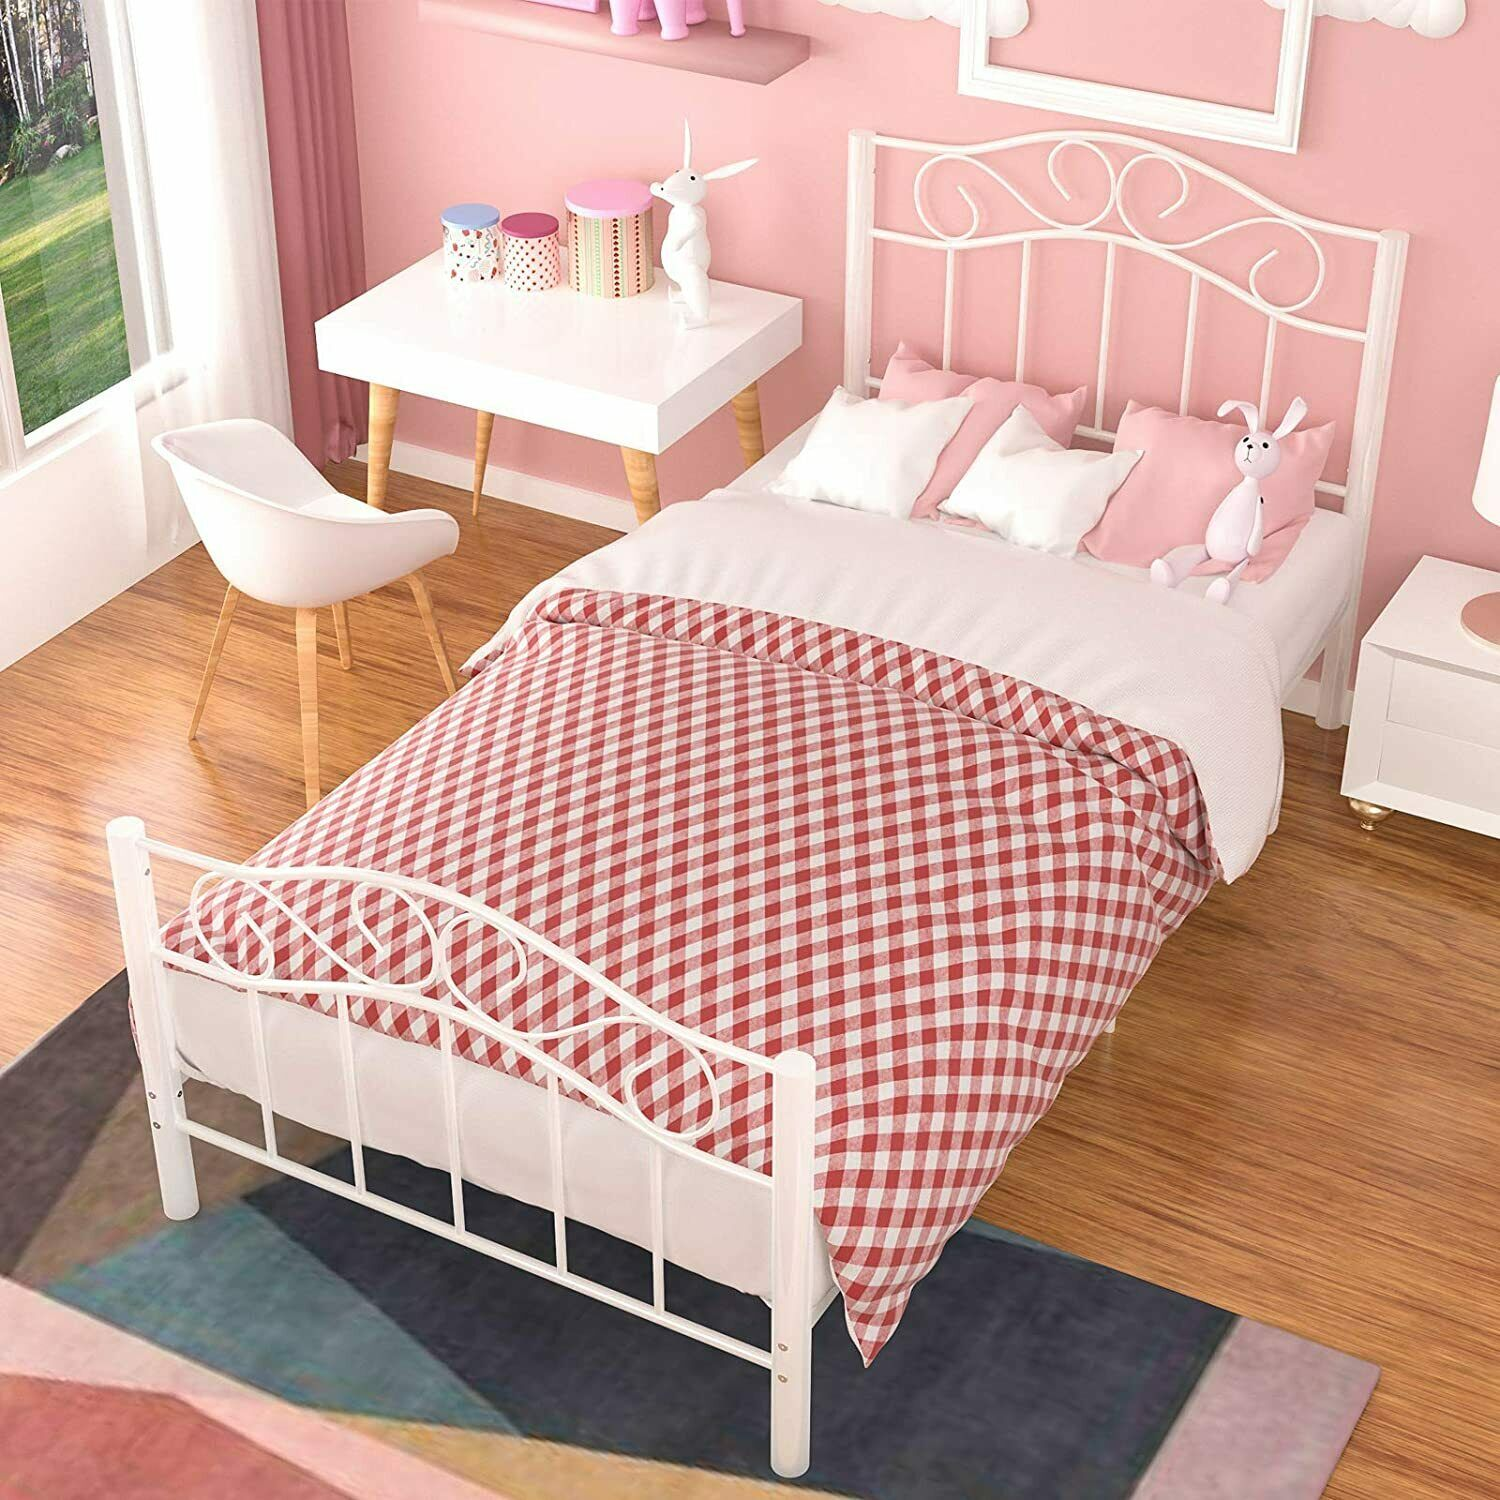 Metal Bed Twin Size Headboard Footboard Cherry Bronze Finish Bedroom Furniture For Sale Online Ebay